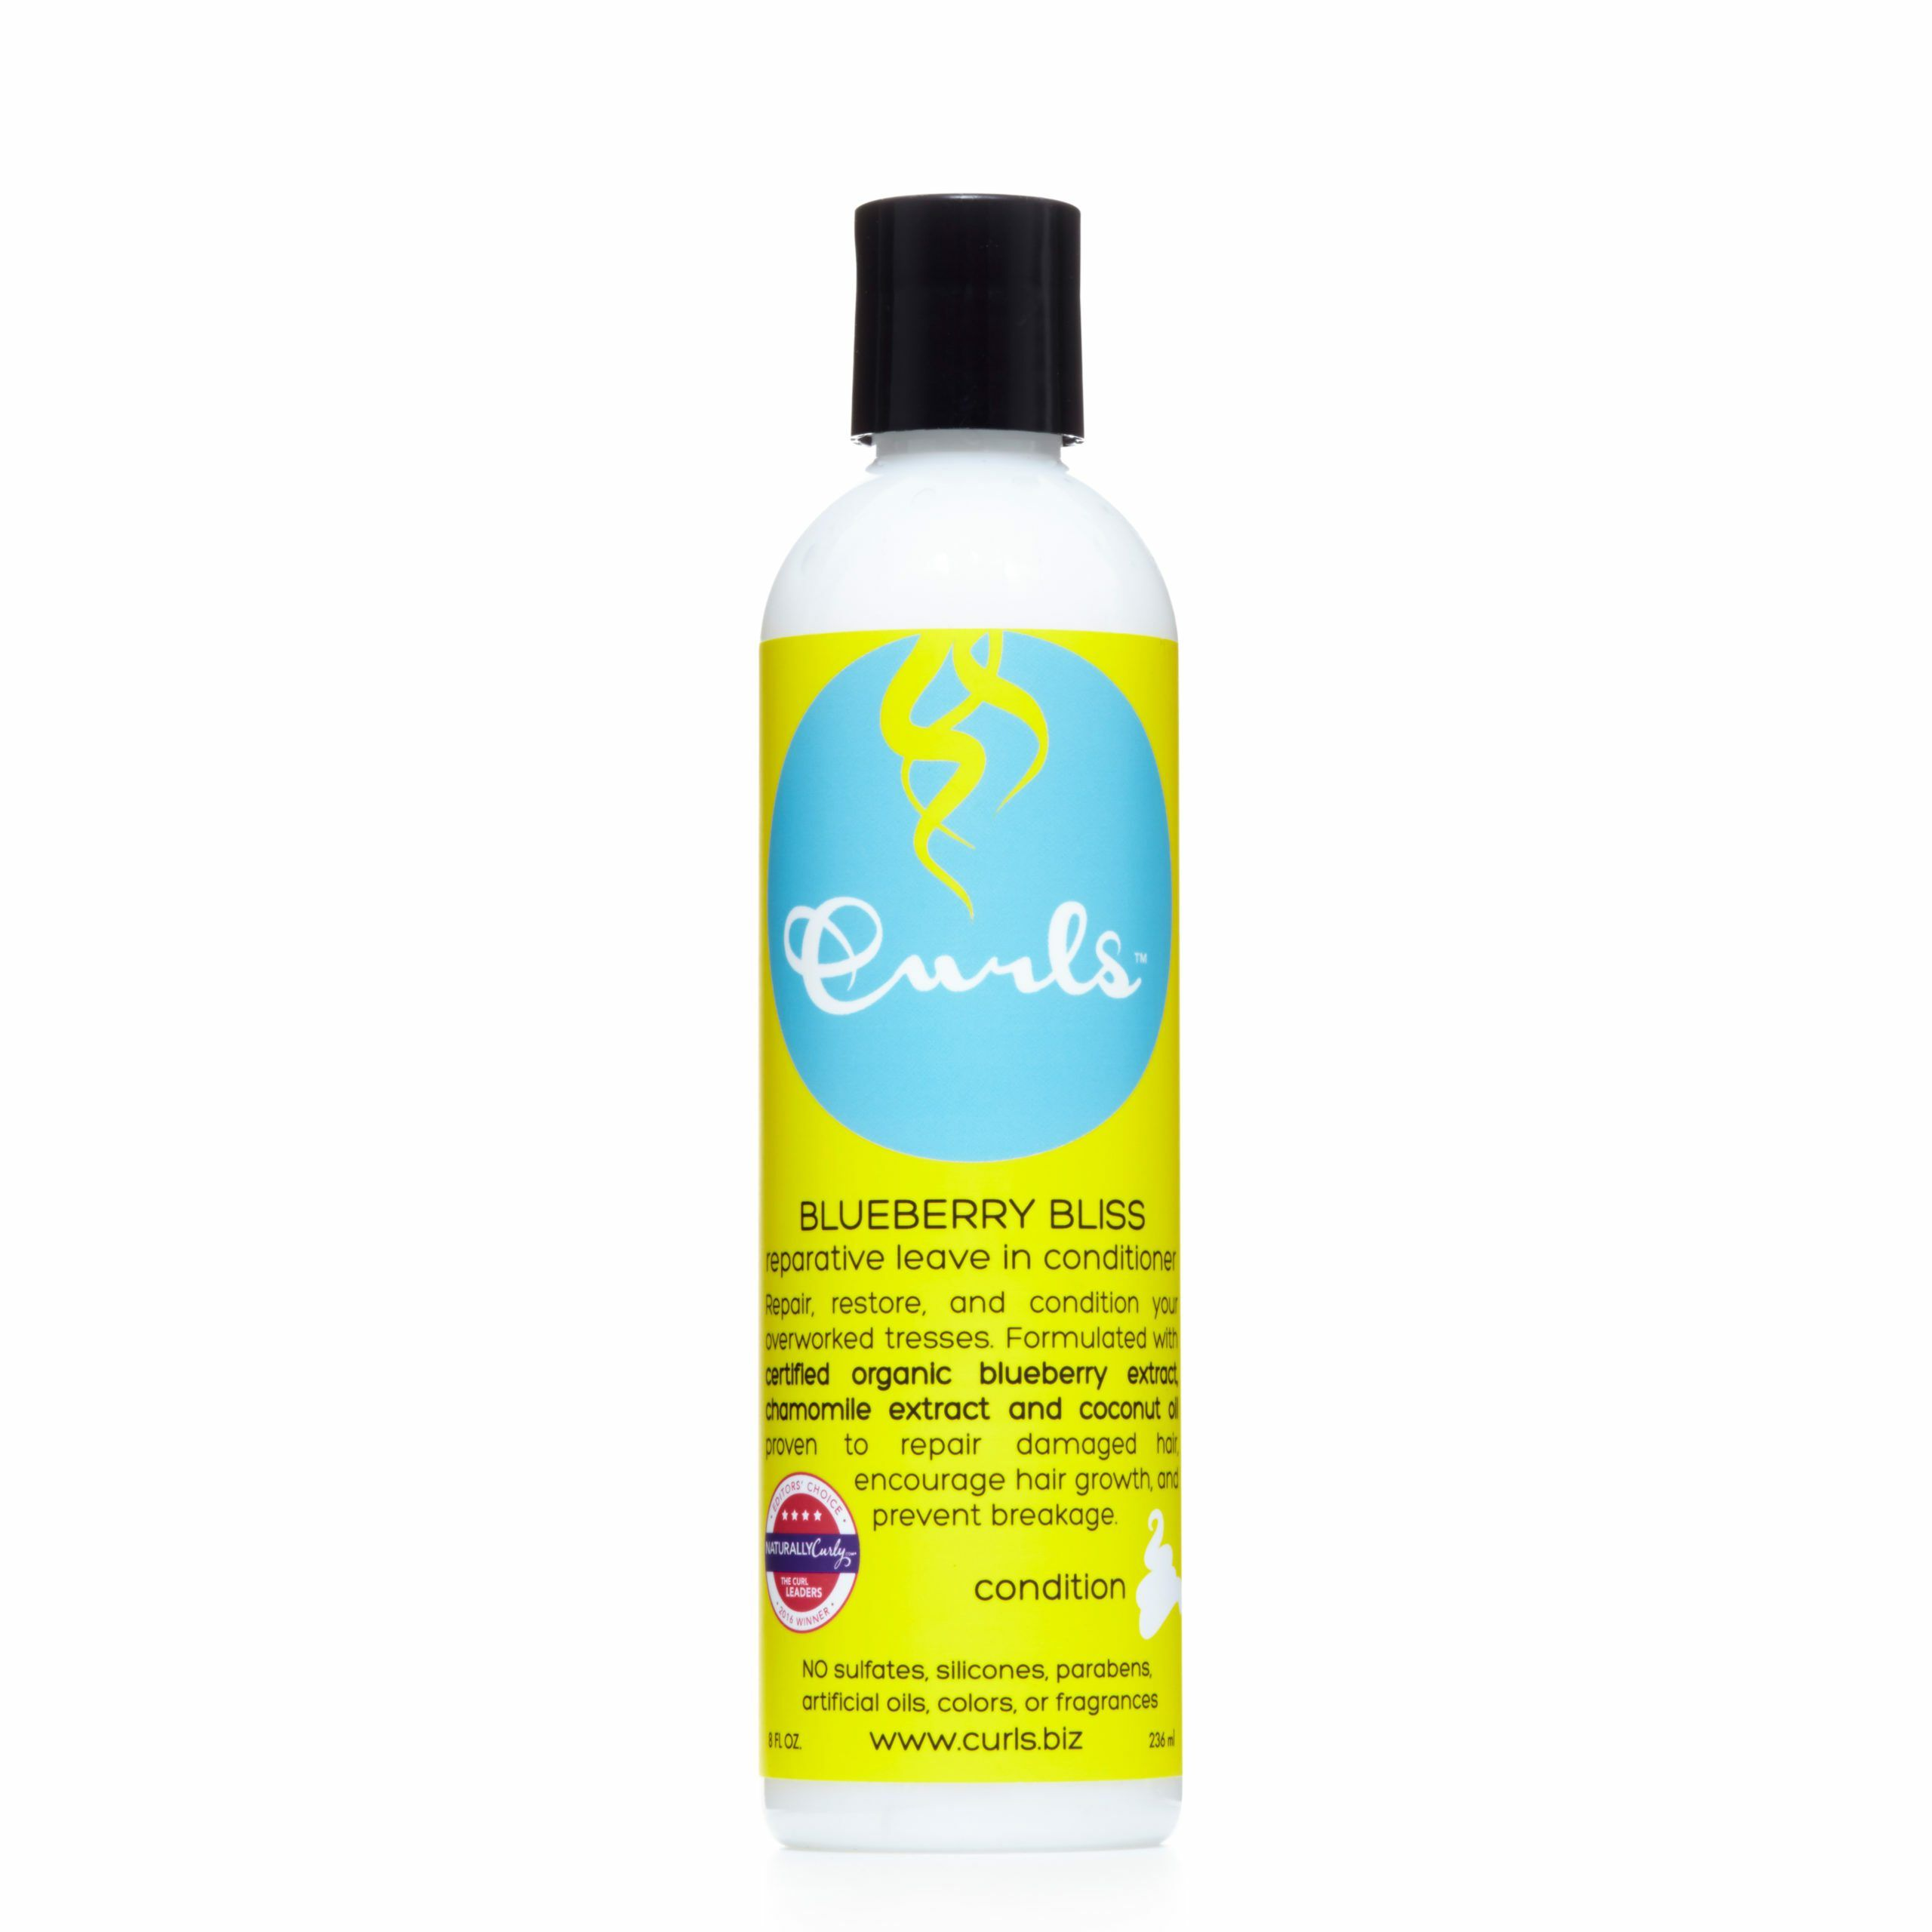 Curls Blueberry Blueberry Bliss Reparative Leave In Conditioner Leave-in Conditioners Curls